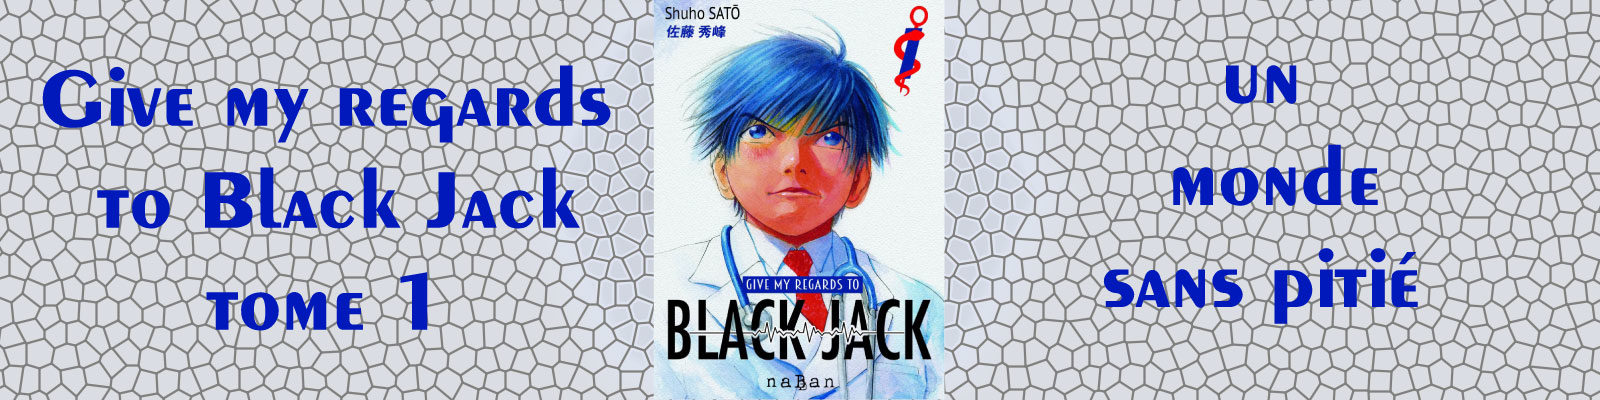 Give my regards to Black Jack 1